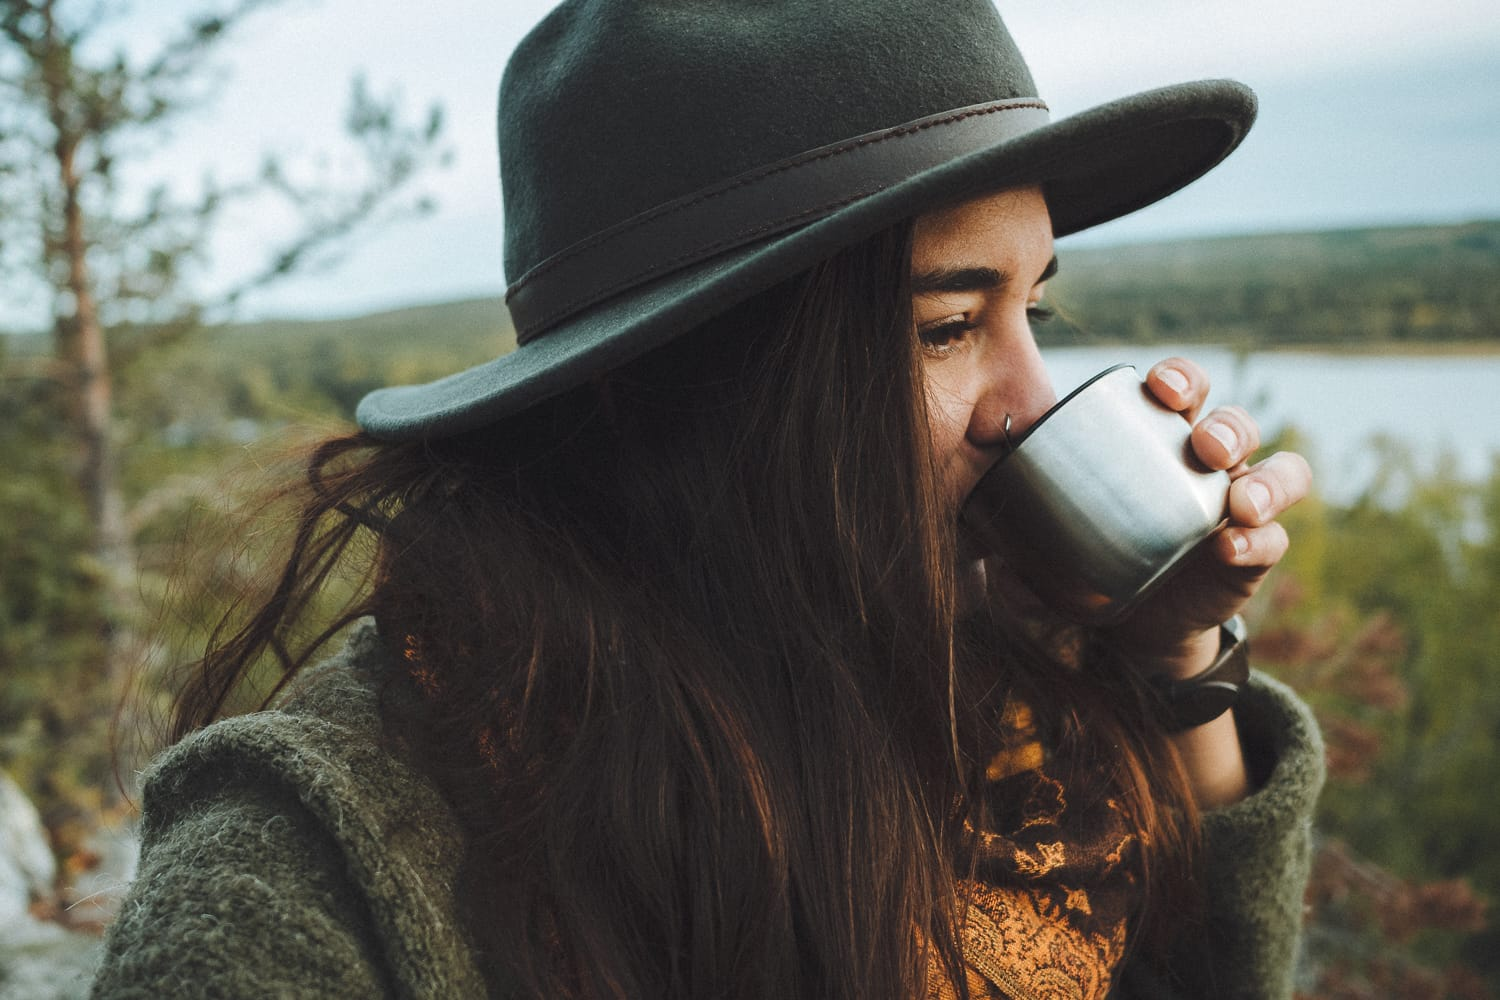 woman wearing a hat drinking coffee in the forest